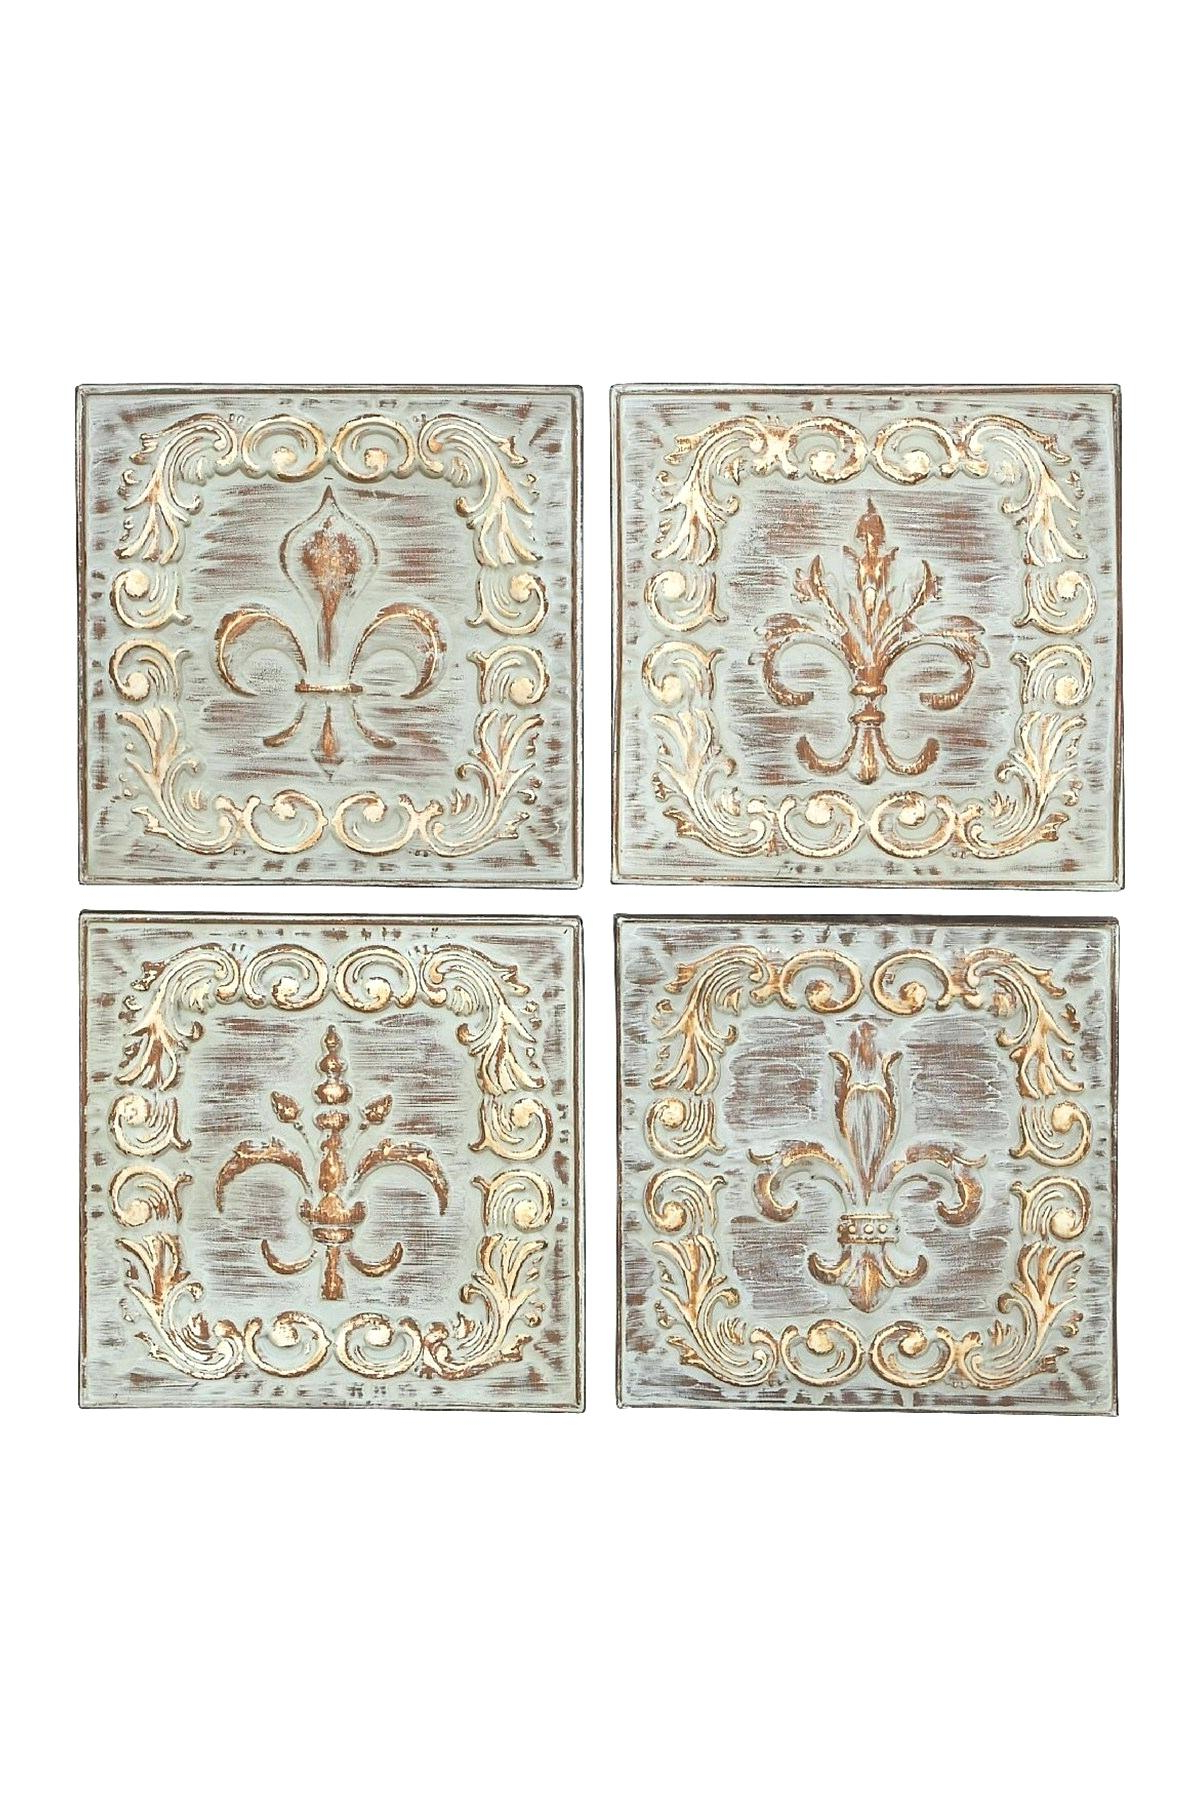 Preferred 4 Piece Wall Decor Sets With Regard To Metal Wall Decor Set Full Size Of Modern Patio Wall Decor Sets Smart (View 18 of 20)